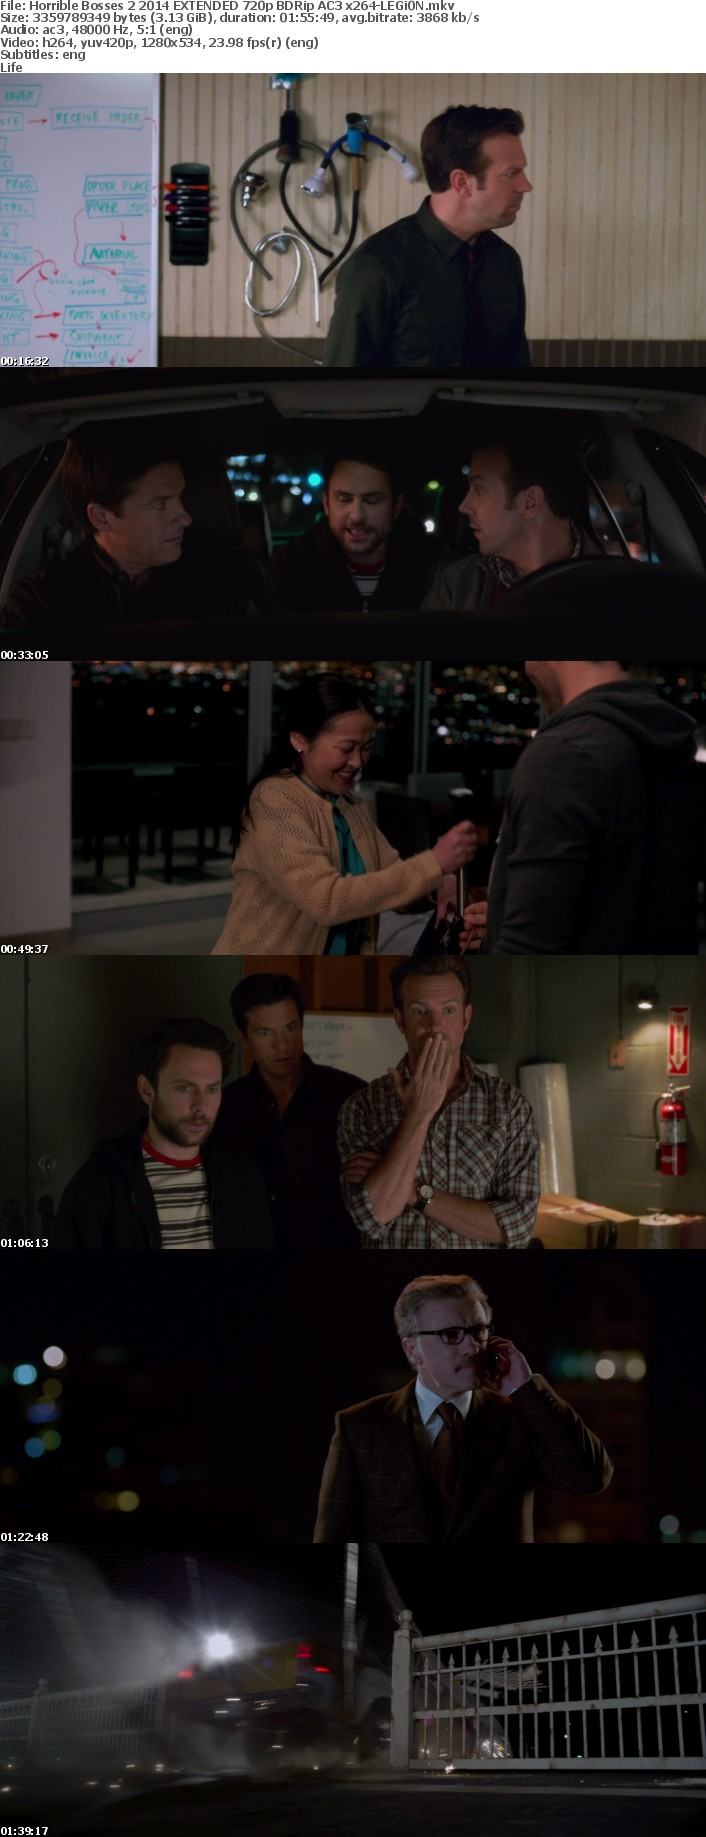 Horrible Bosses 2 2014 EXTENDED 720p BDRip AC3 x264-LEGi0N